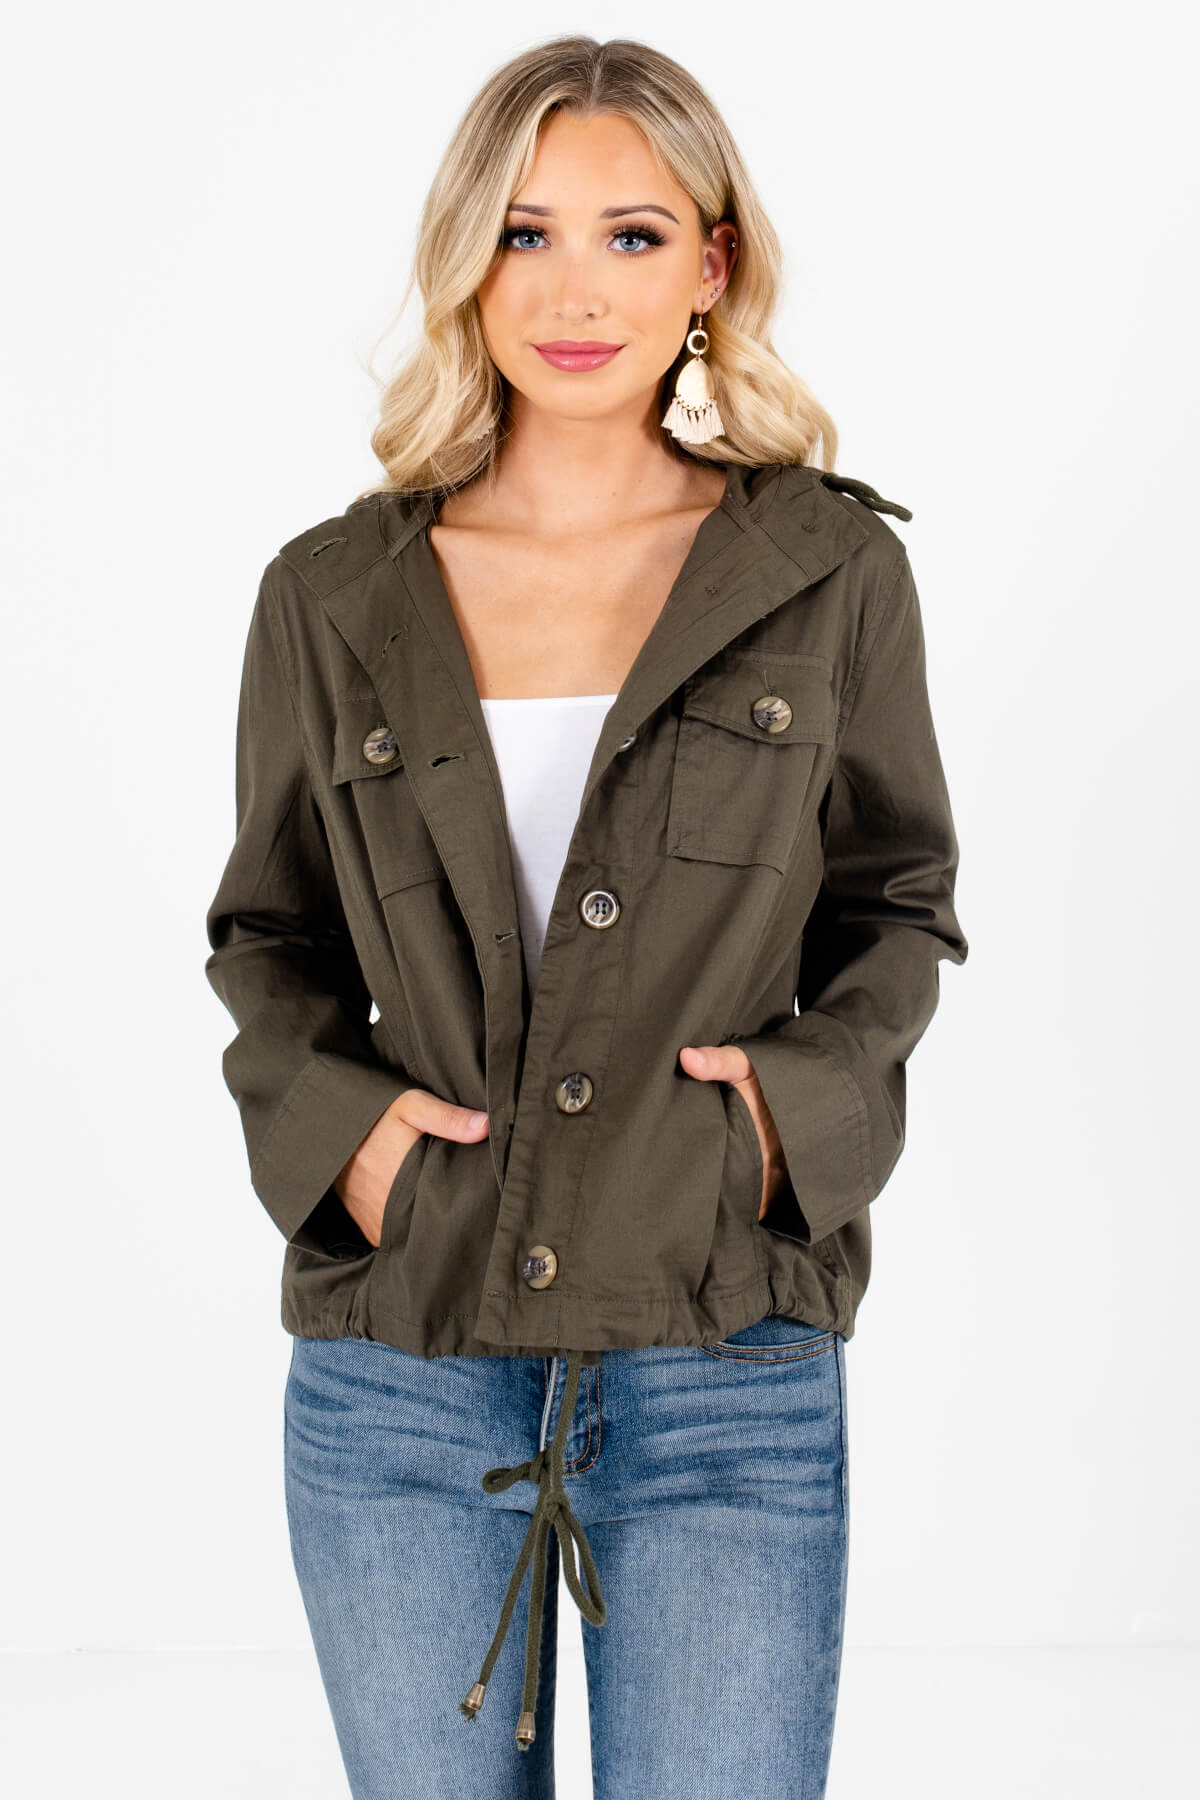 Olive Green Button-Up Front Boutique Jackets for Women